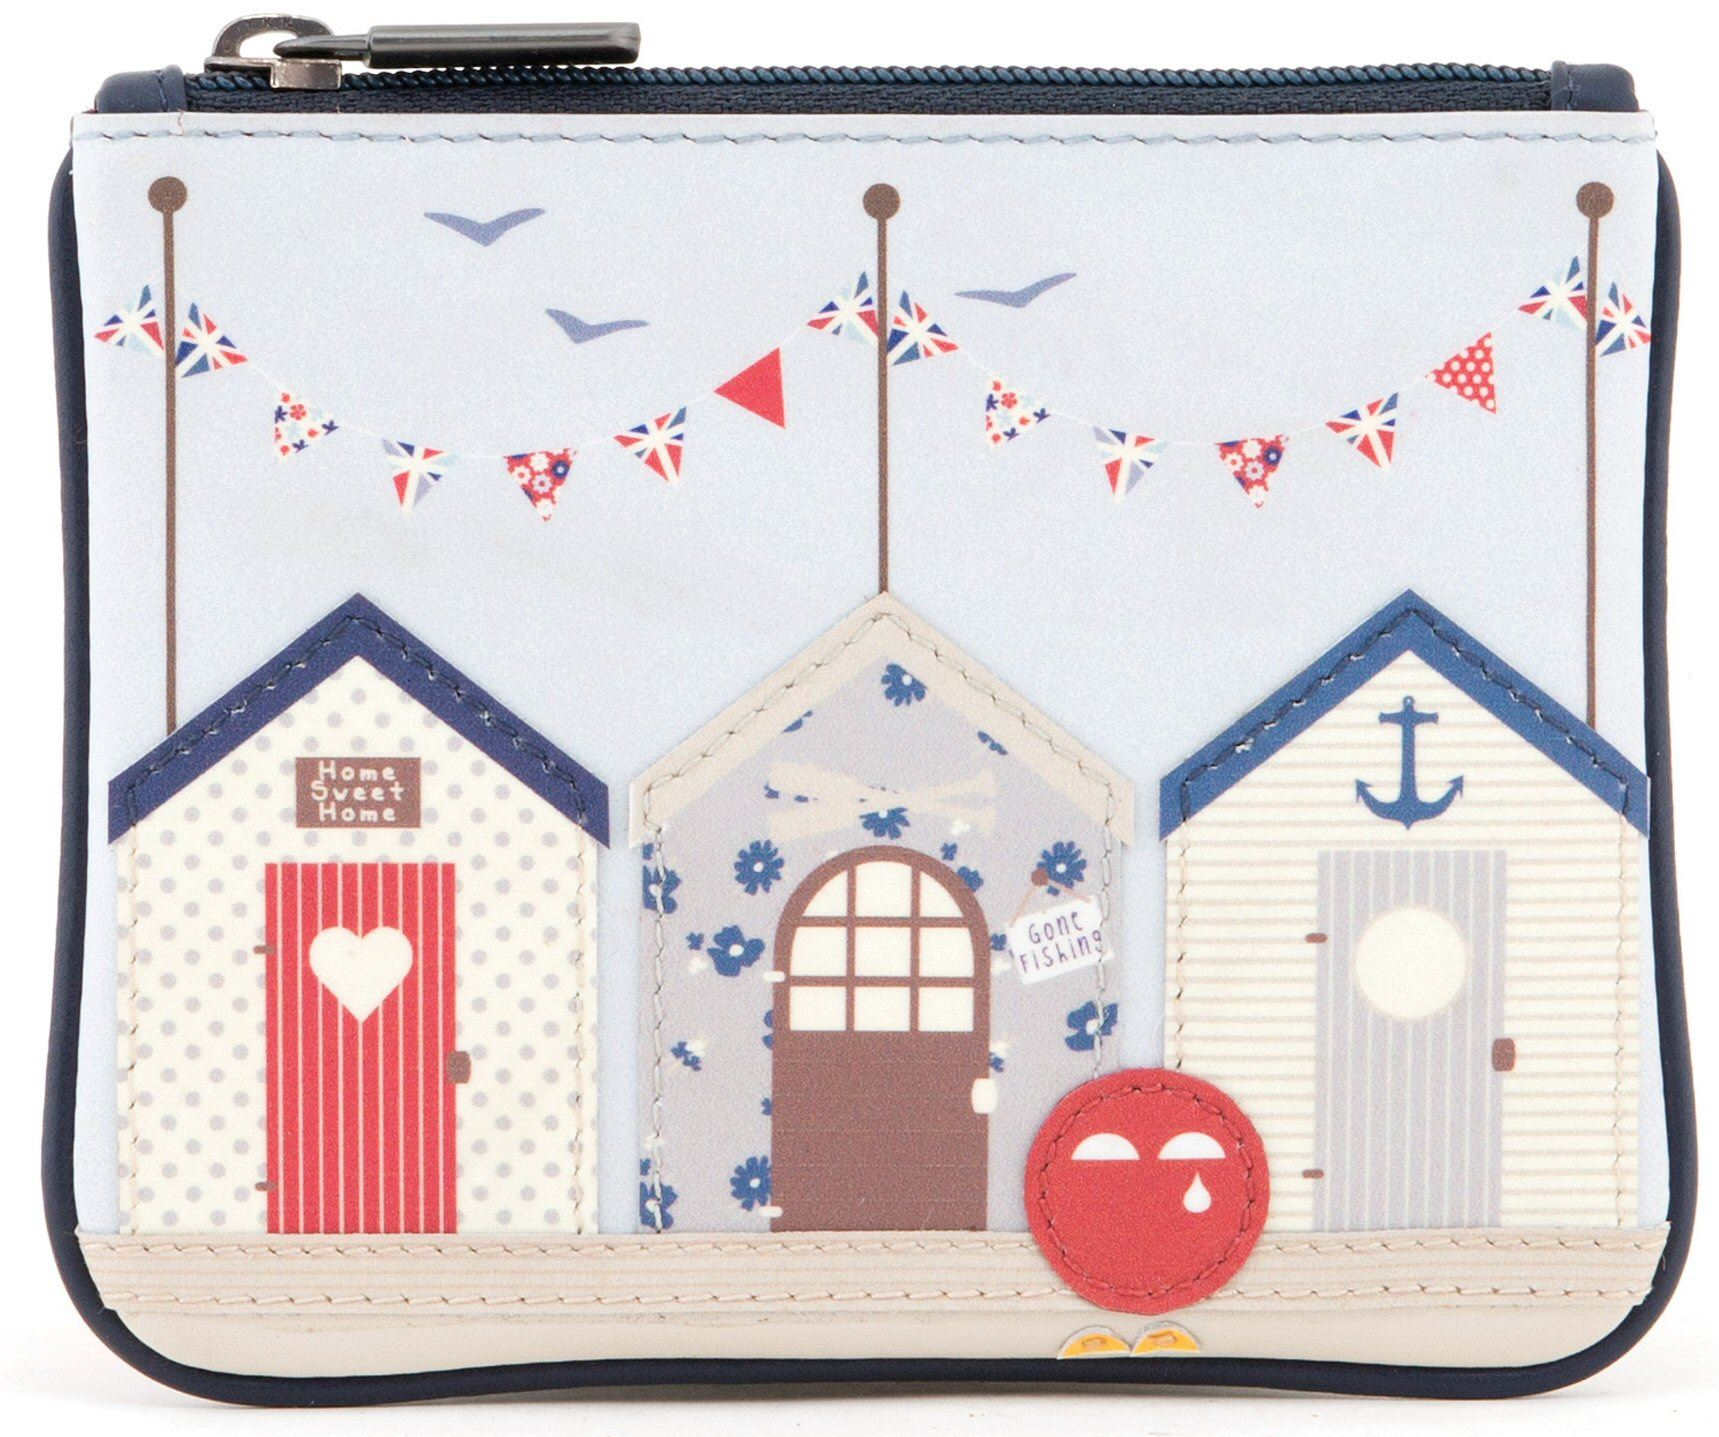 LIMITED-EDITION-039-Yoshi-Beside-The-Seaside-039-Applique-Leather-Coin-Purse-Y1723-BCH